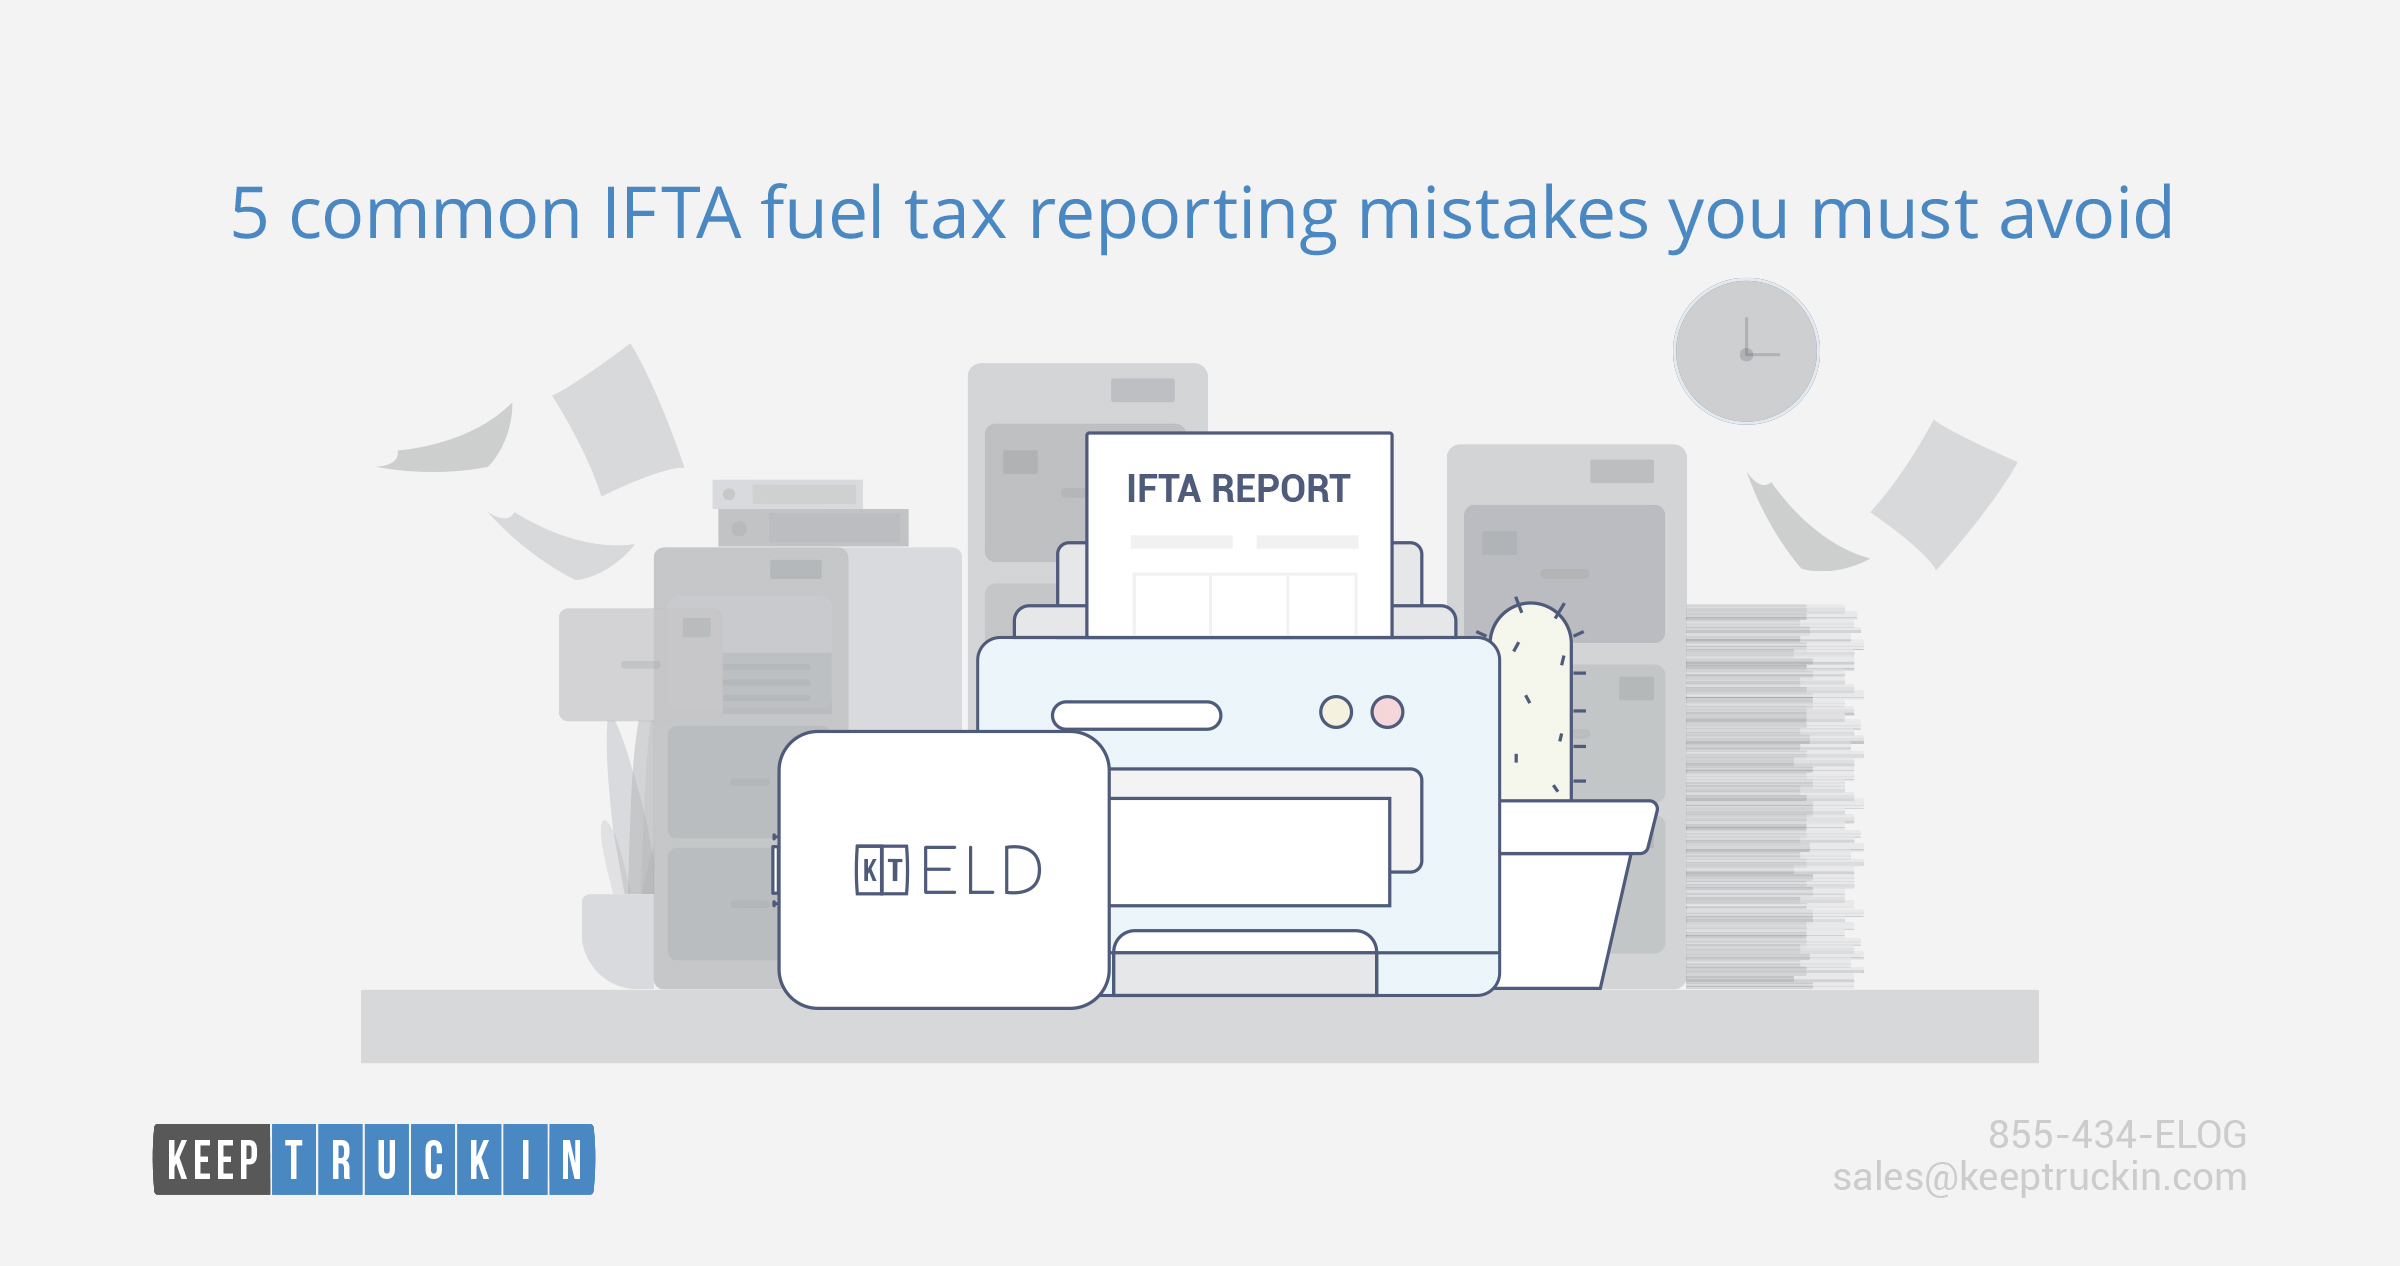 5 common IFTA fuel tax reporting mistakes you must avoid